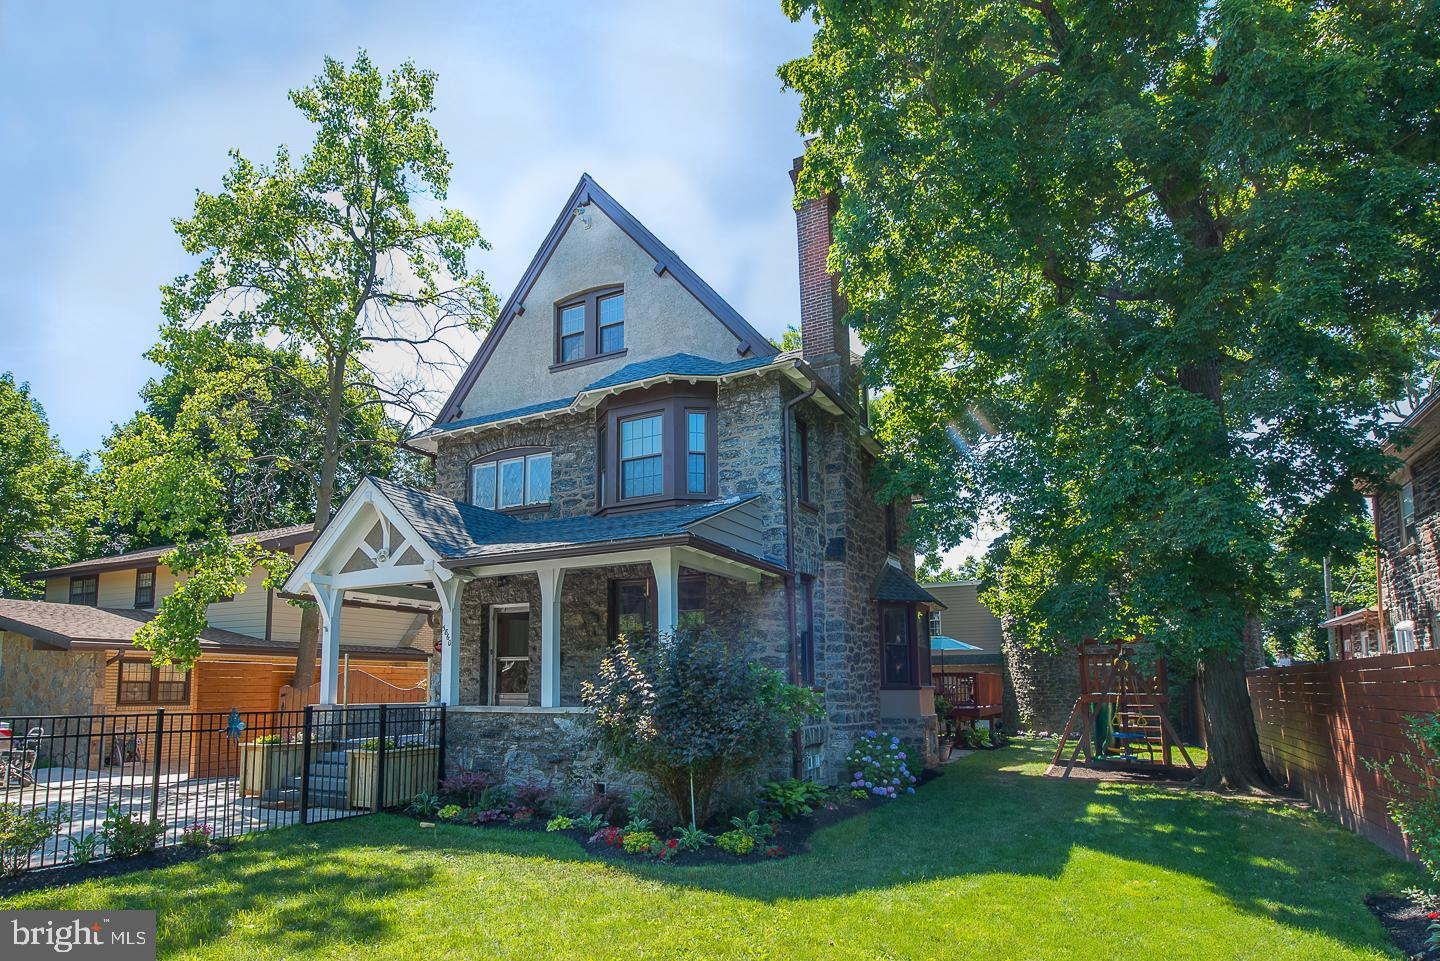 5860 WOODBINE AVENUE, PHILADELPHIA, PA 19131